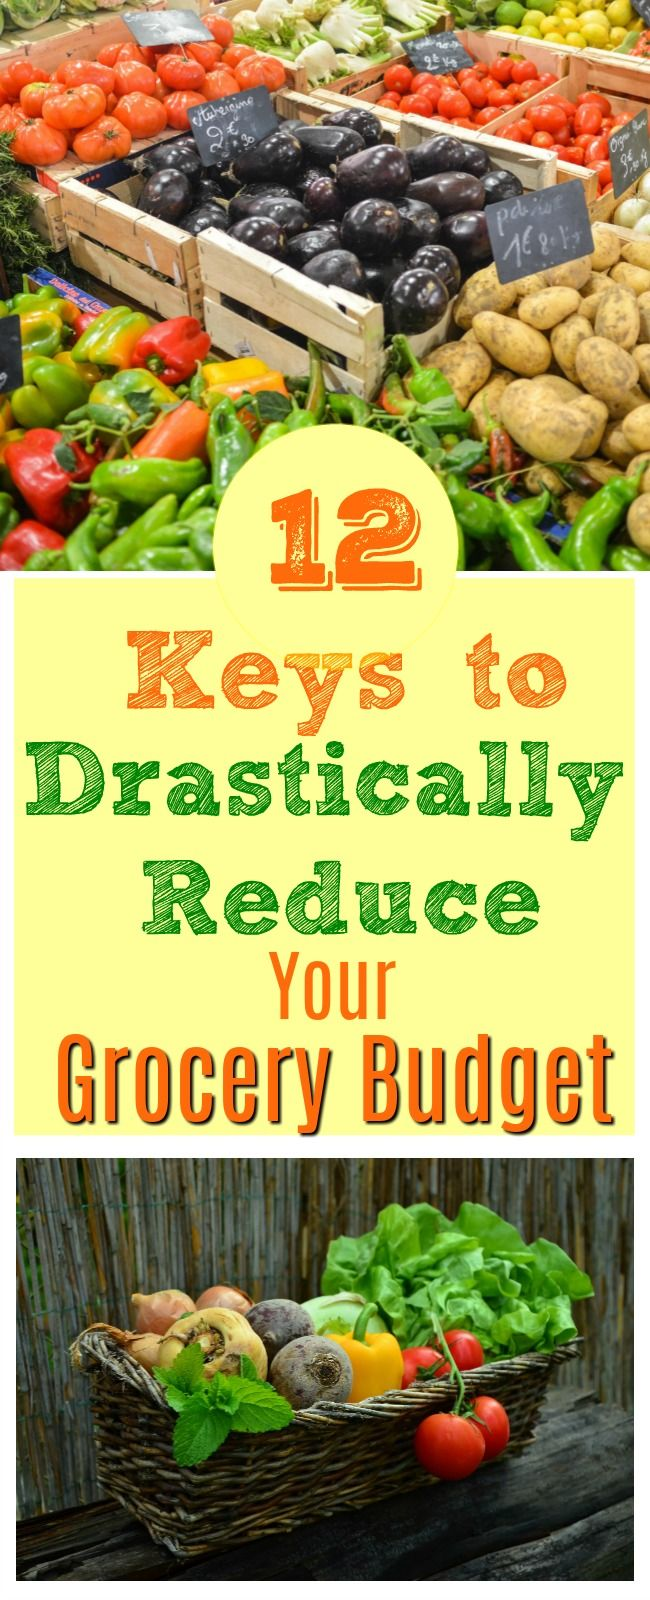 Food is a huge part of our monthly expenses, but you'd be surprised how much flexibility you have. Grocery budget | Food Budget | grocery | groceries | budget food | Save on food | budget